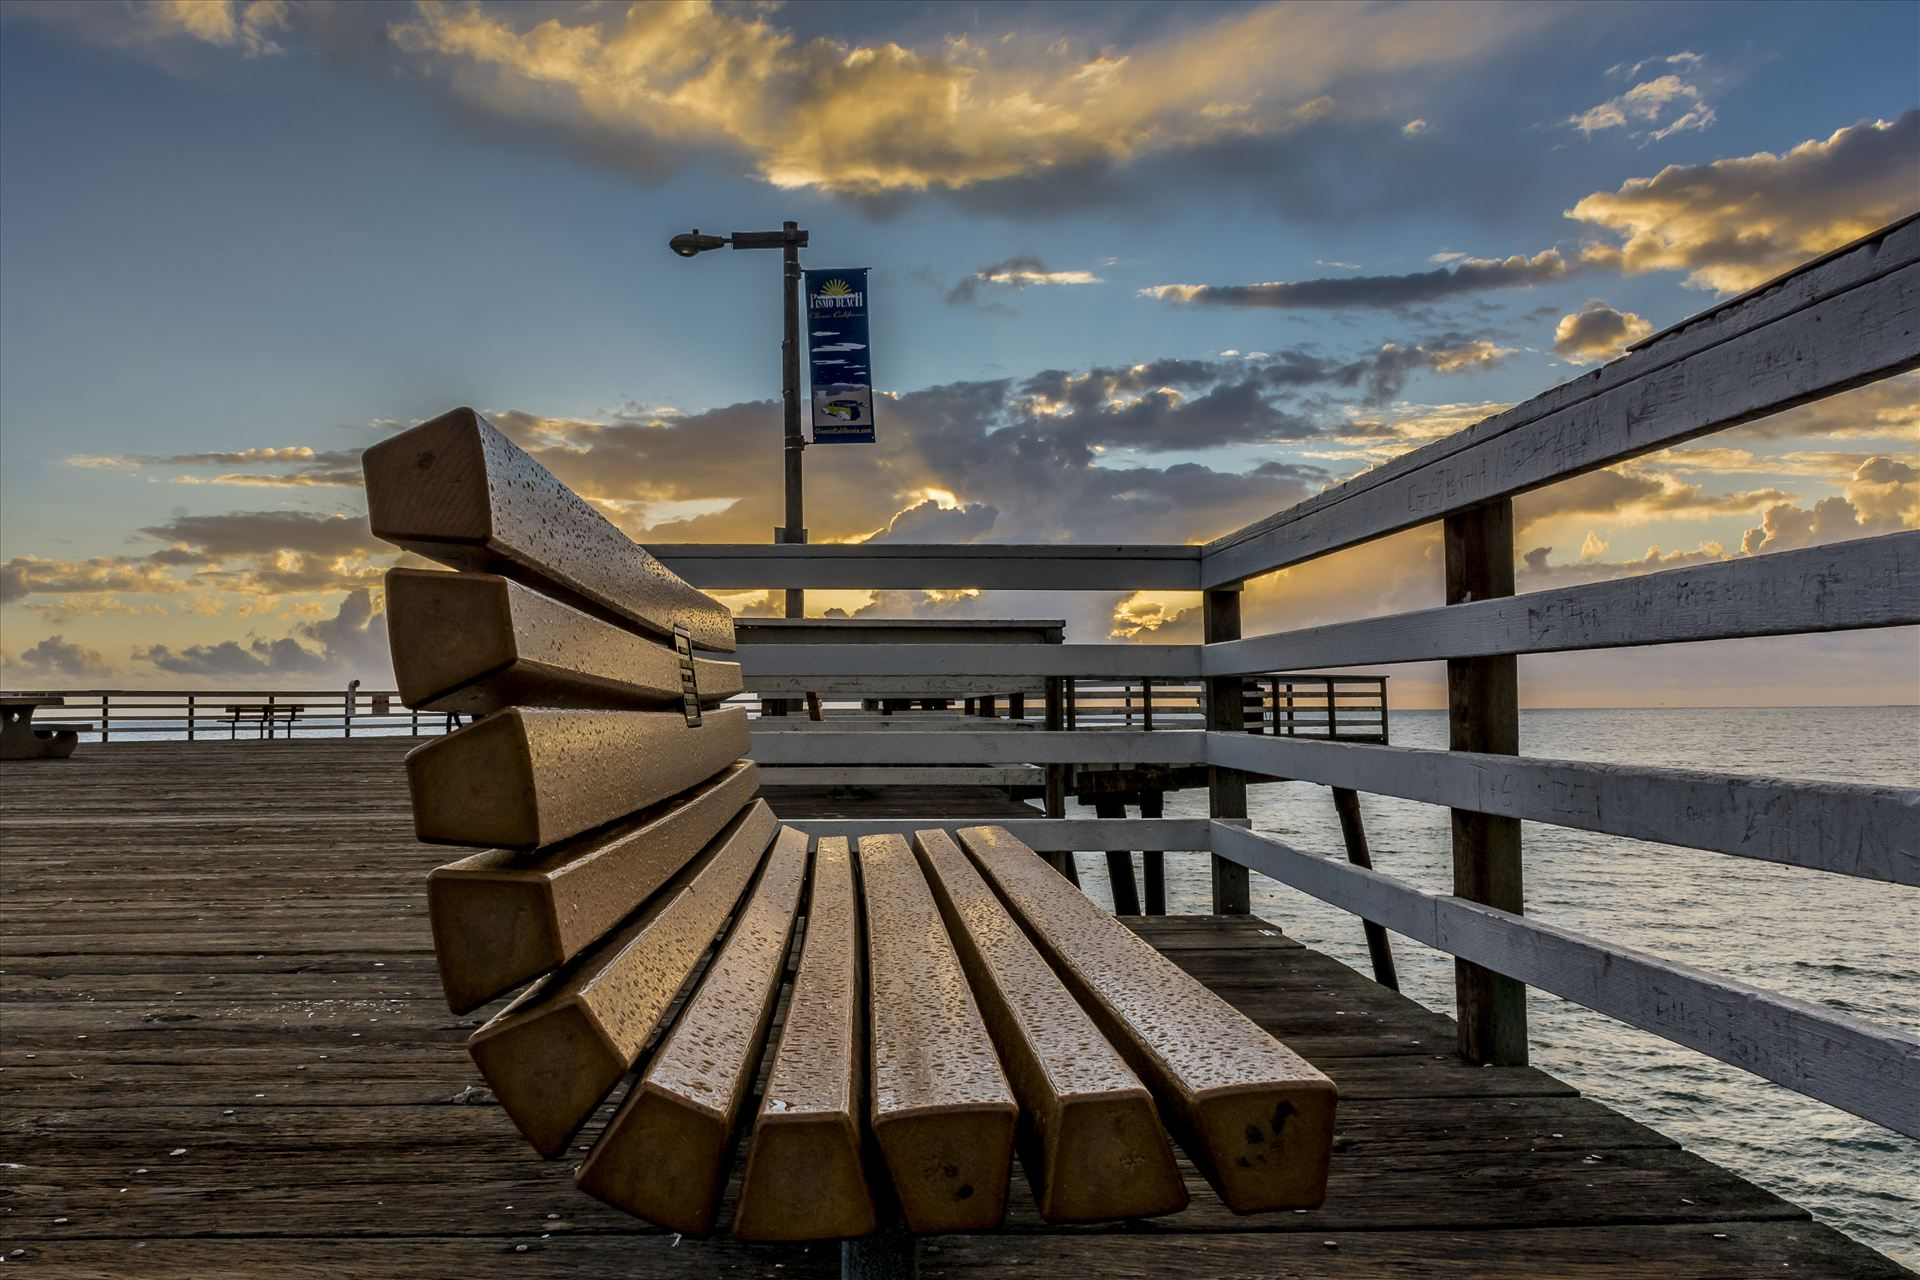 Rainy Bench.jpg - Rain slicked bench on Pismo Beach pier at sunset by Sarah Williams